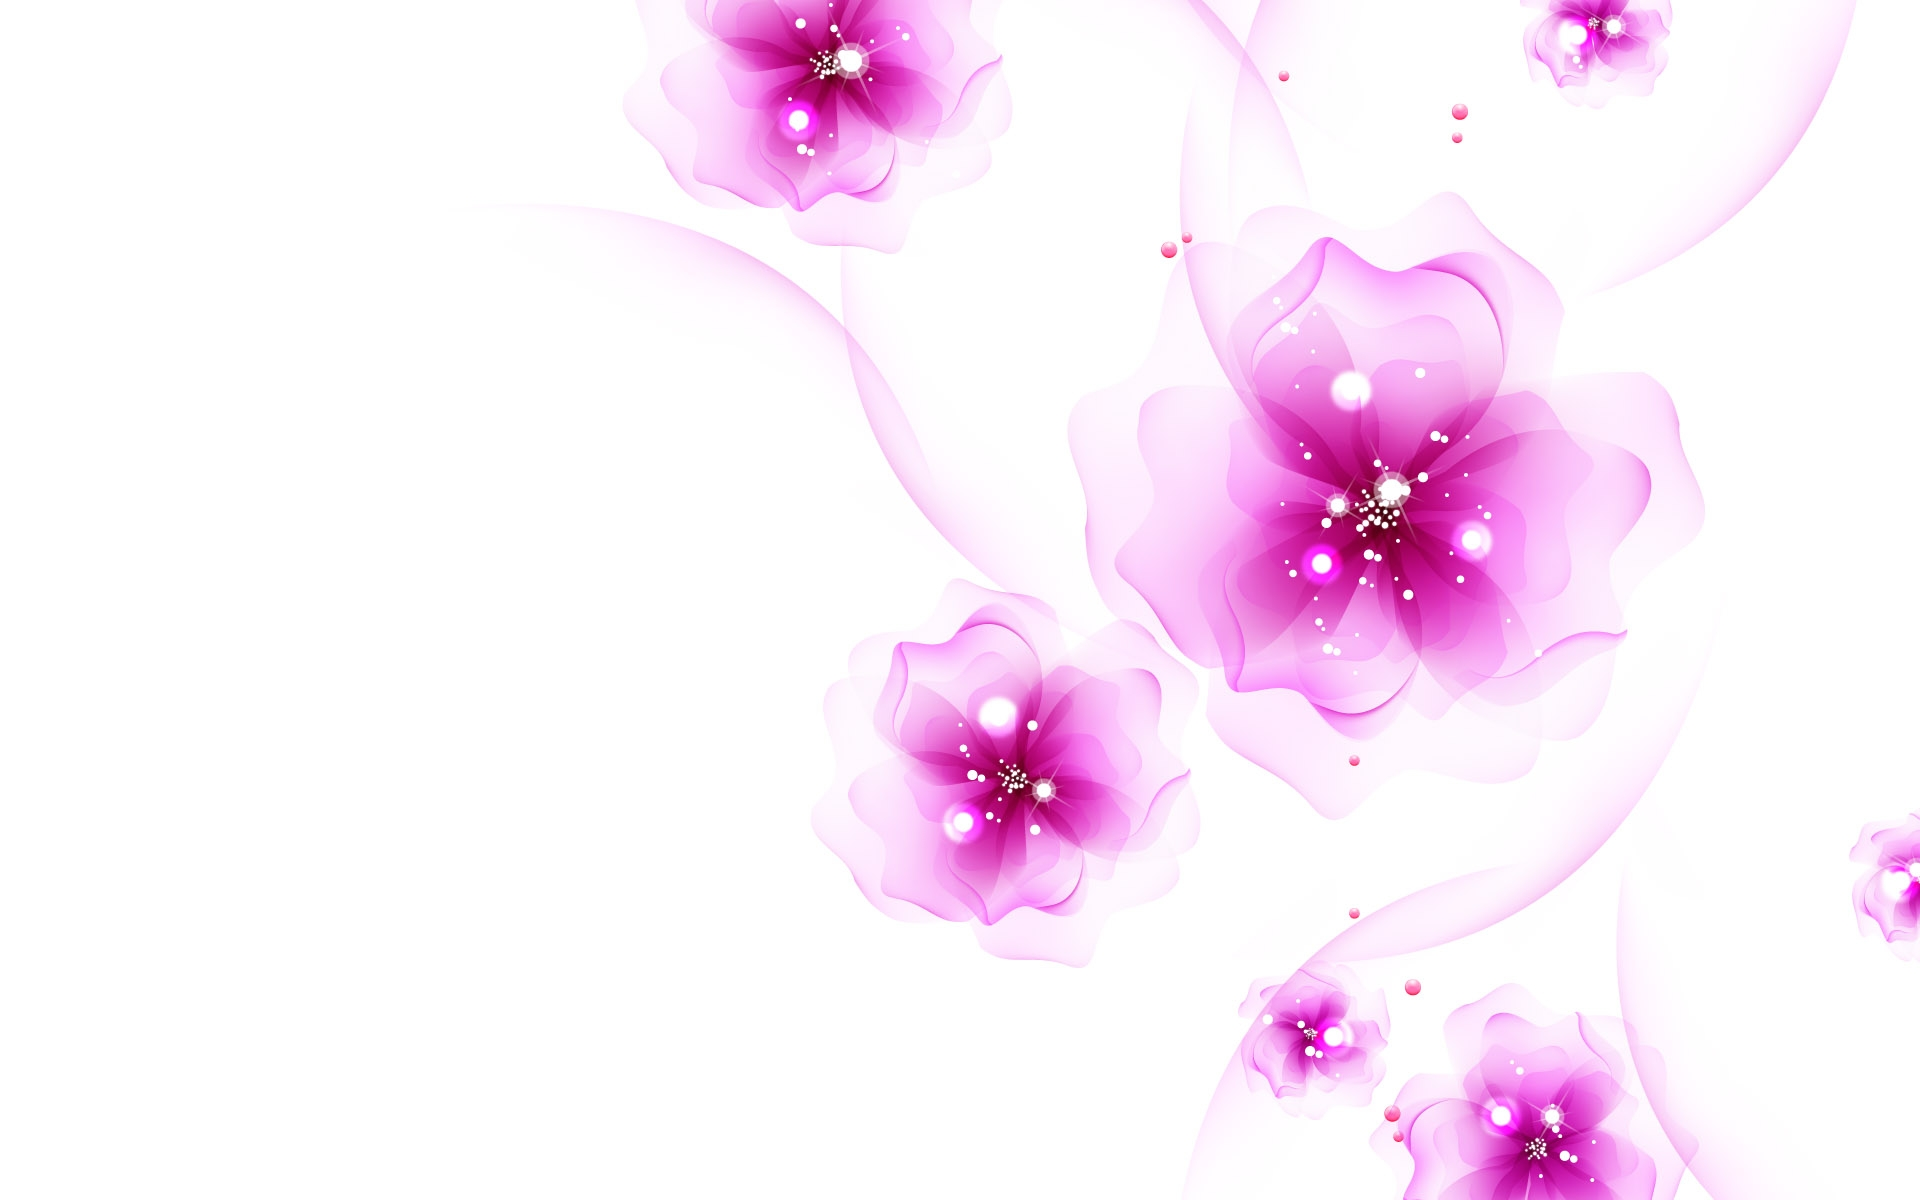 ... beautiful-white-and-pink-abstract-backgrounds-flowers ...